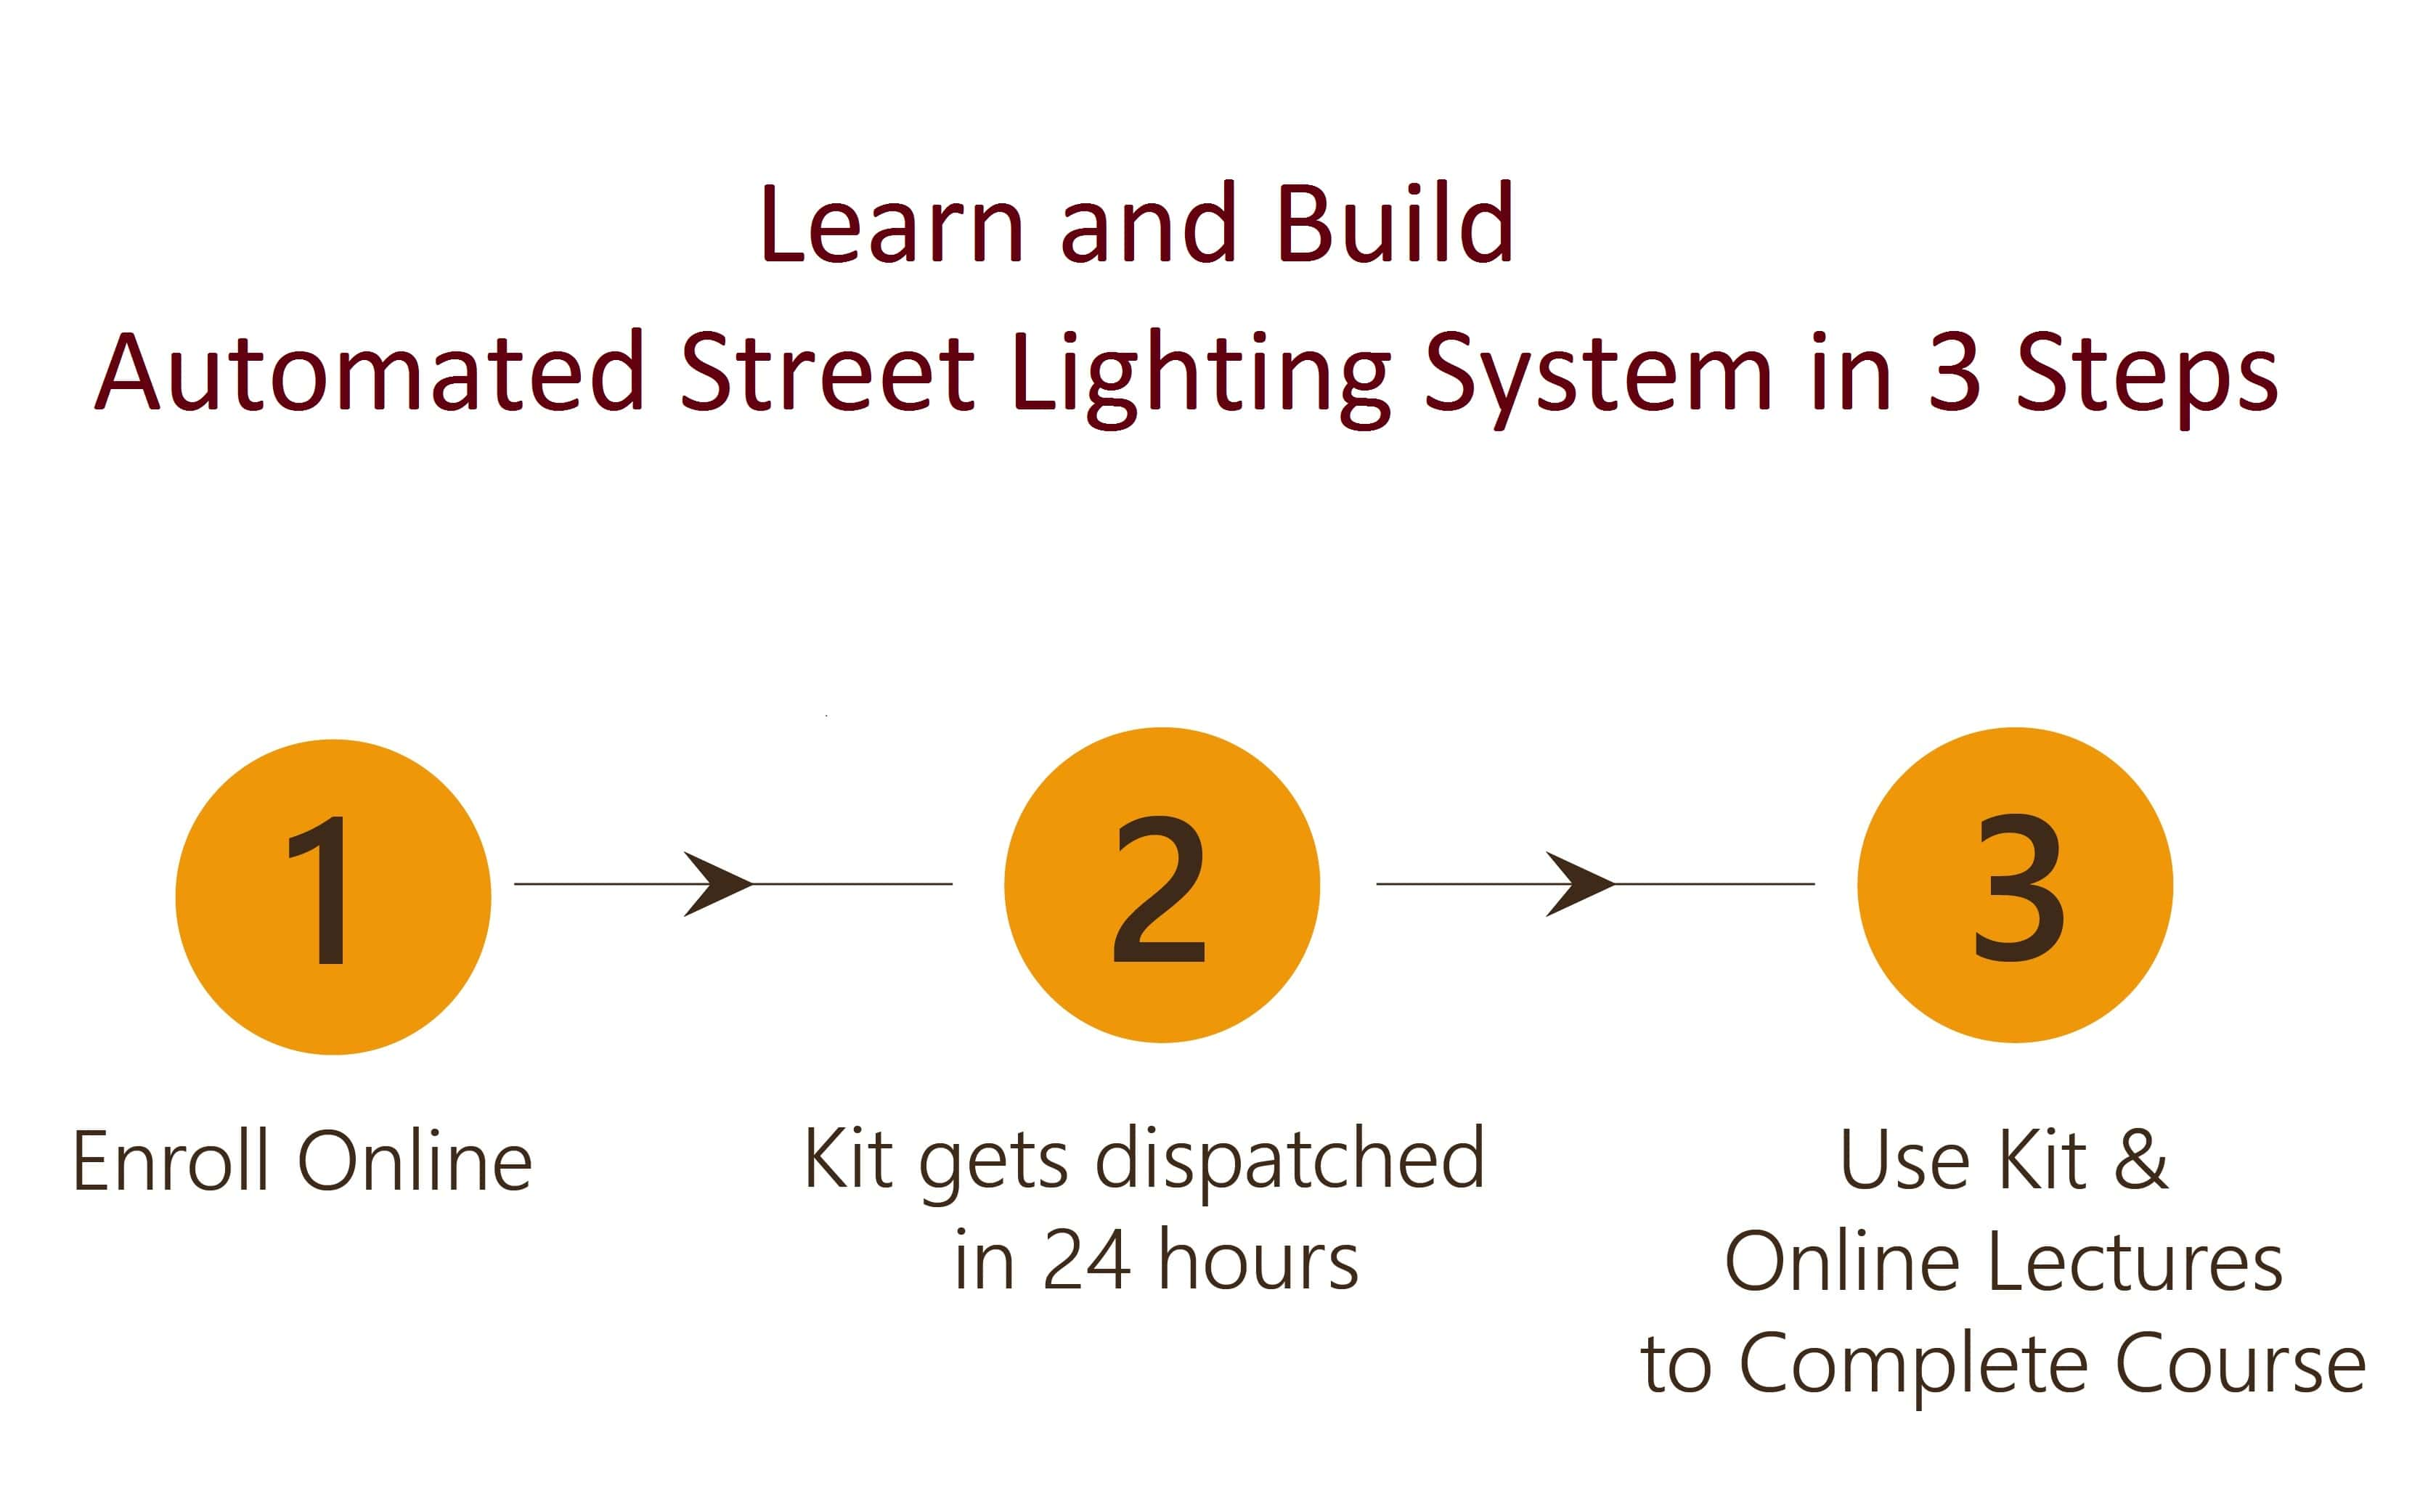 Design and Build Automated Street Lighting using IoT Project in 3 Steps